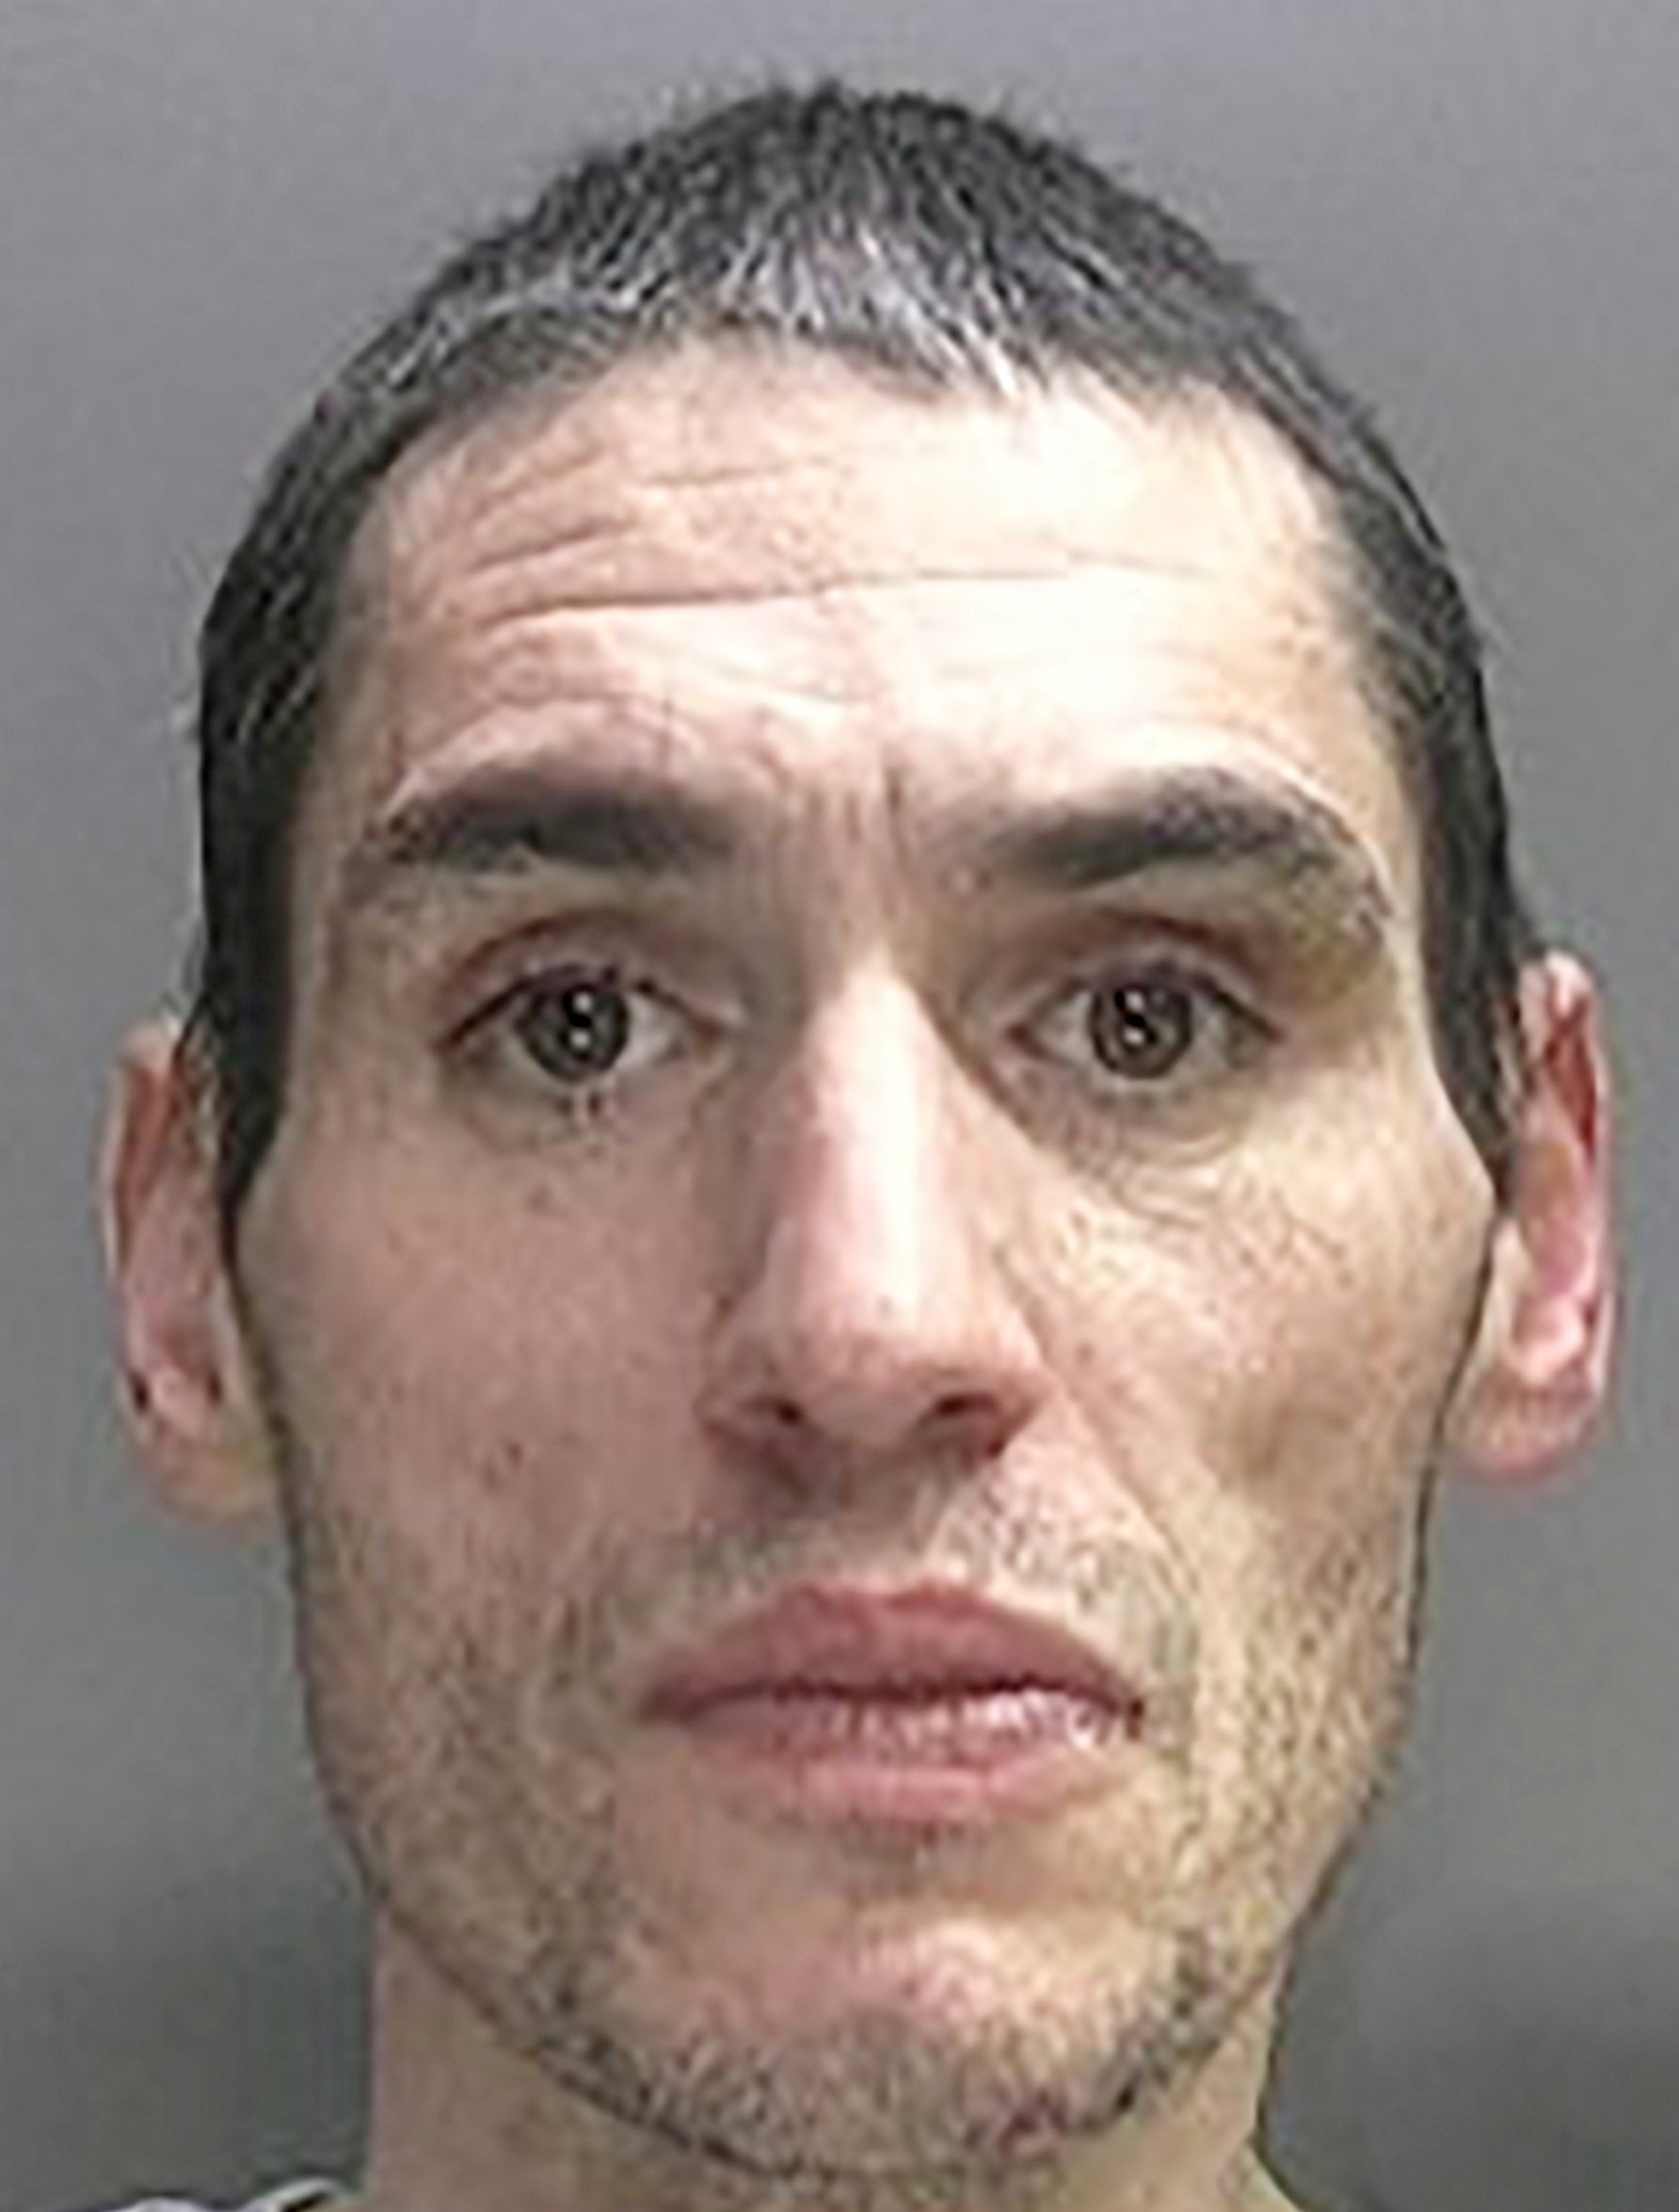 """FILE PICTURE - Nicholas Mason. A 43-year-old man has been arrested on suspicion of attacking an 86-year-old gran who suffered a broken neck and back after she was dragged up the stairs by her ANKLES. See NTI story NTIBURGLAR. Police launched a manhunt for Nicholas Mason who is accused of tricking his way into Veronica Eustace's home in Yardley, Birmingham, by pretending to be a relative. Her family say she opened the door when a man yelled """"nan help"""" from the back door at 6.30am on Tuesday (5/6). Thinking the person was her grandson Barry, she opened the door but was punched to the floor and the intruder barged his way inside. West Midlands Police confirmed Mason was arrested today (Fri) at 9.35am at an address in East Park, Birmingham."""